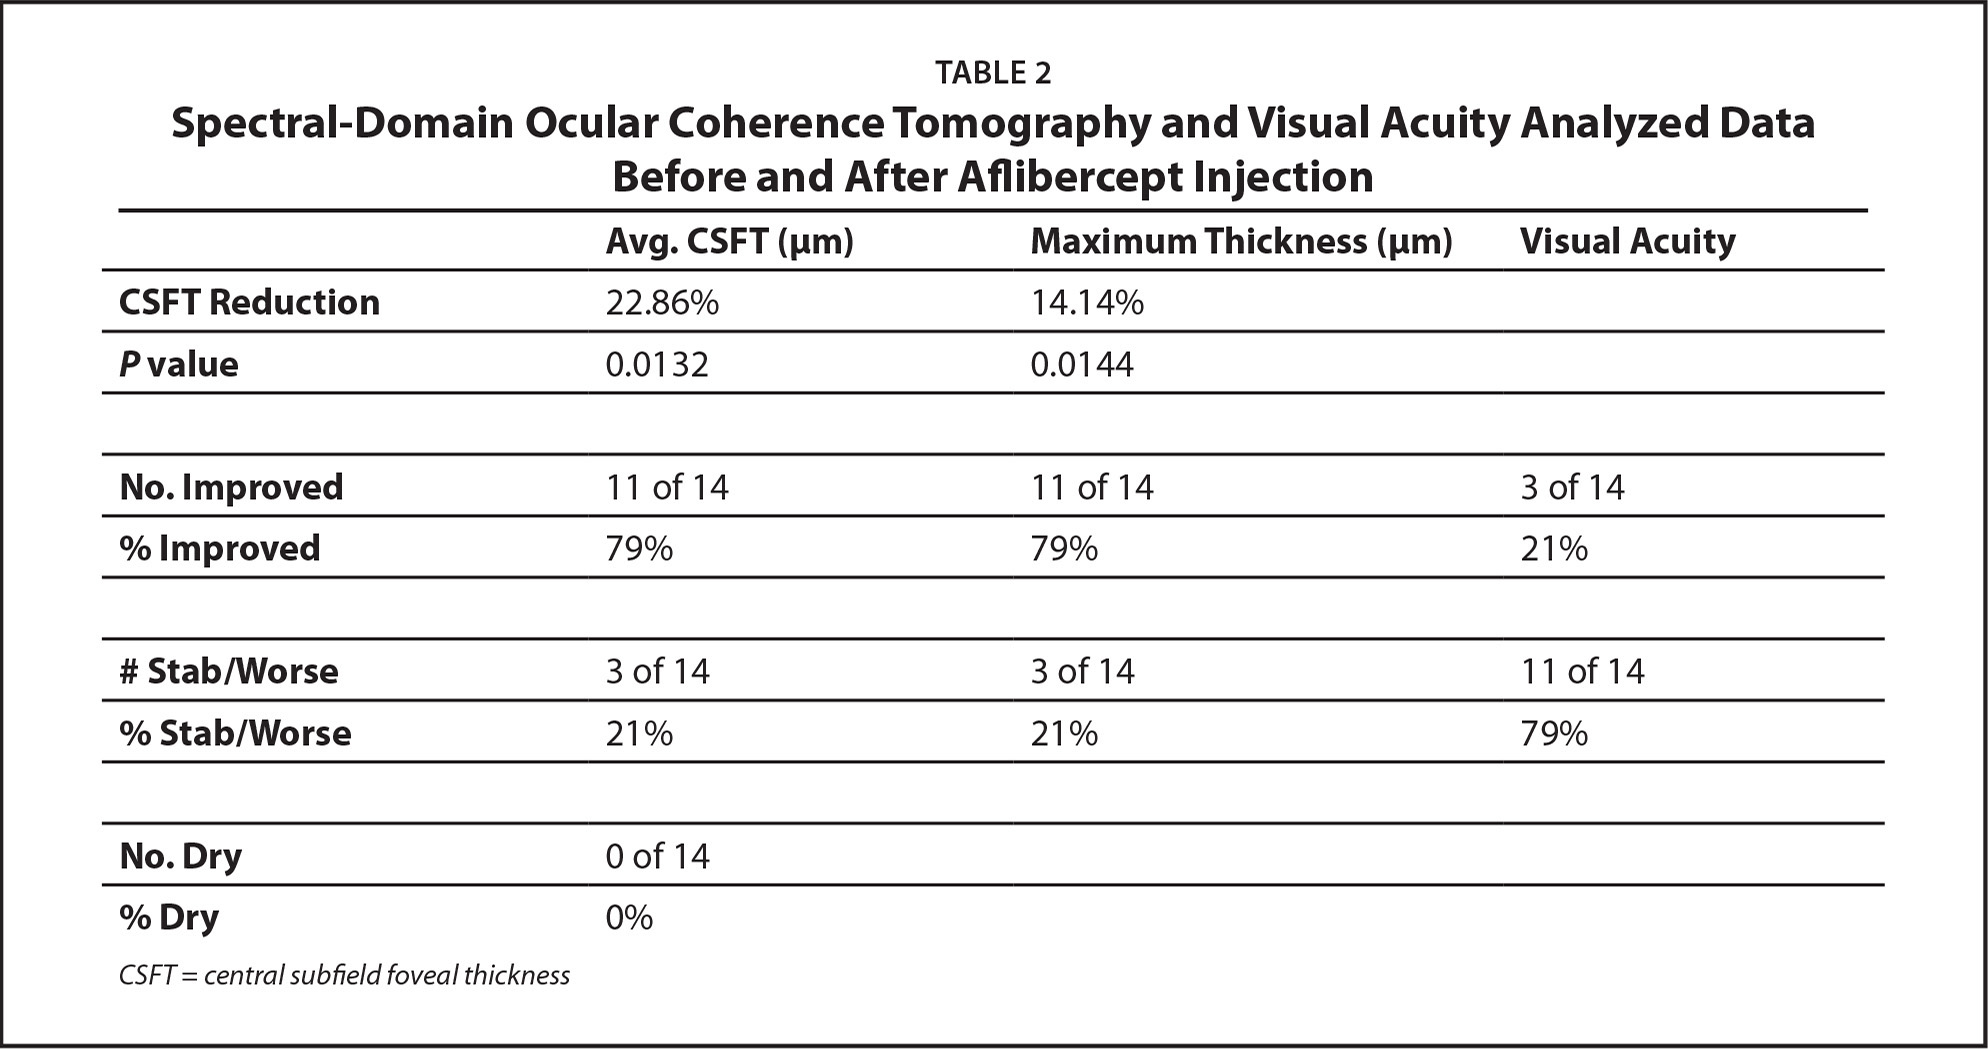 Spectral-Domain Ocular Coherence Tomography and Visual Acuity Analyzed Data Before and After Aflibercept Injection